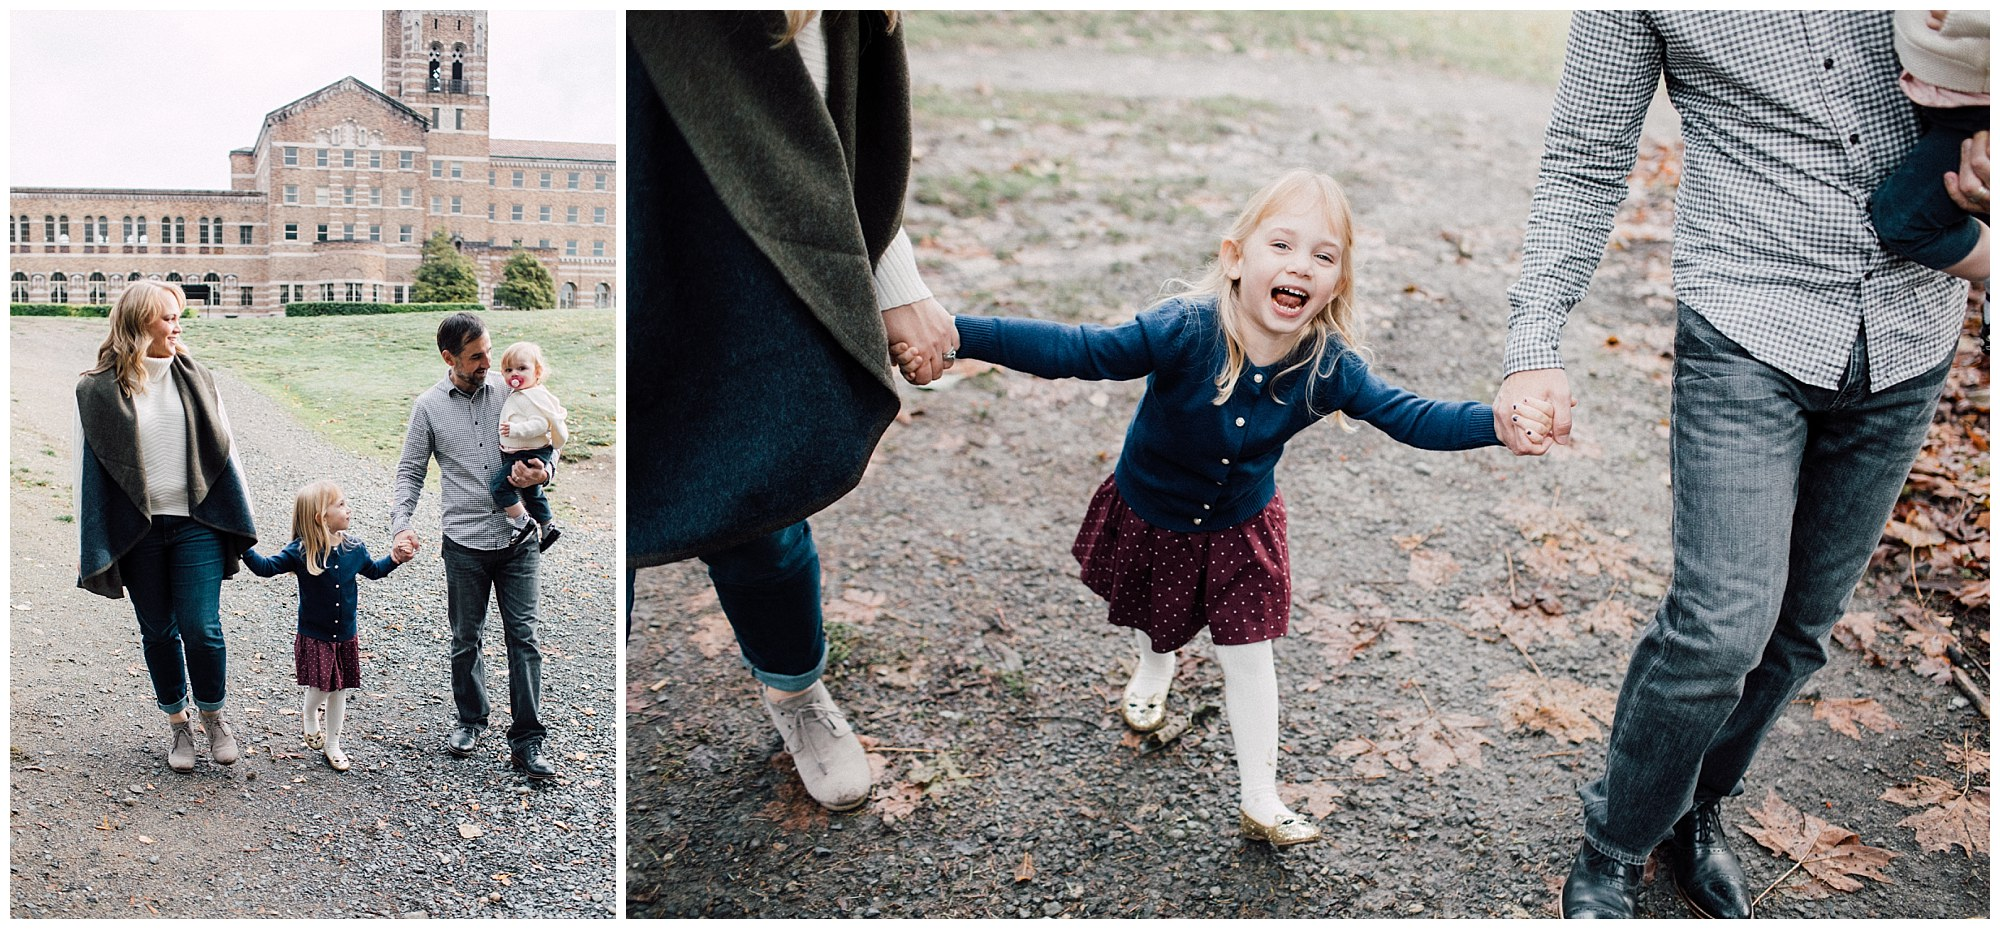 the Happy Film Company - St. Edwards Park - Seattle Family Photography - Family walking down path holding hands with brick building